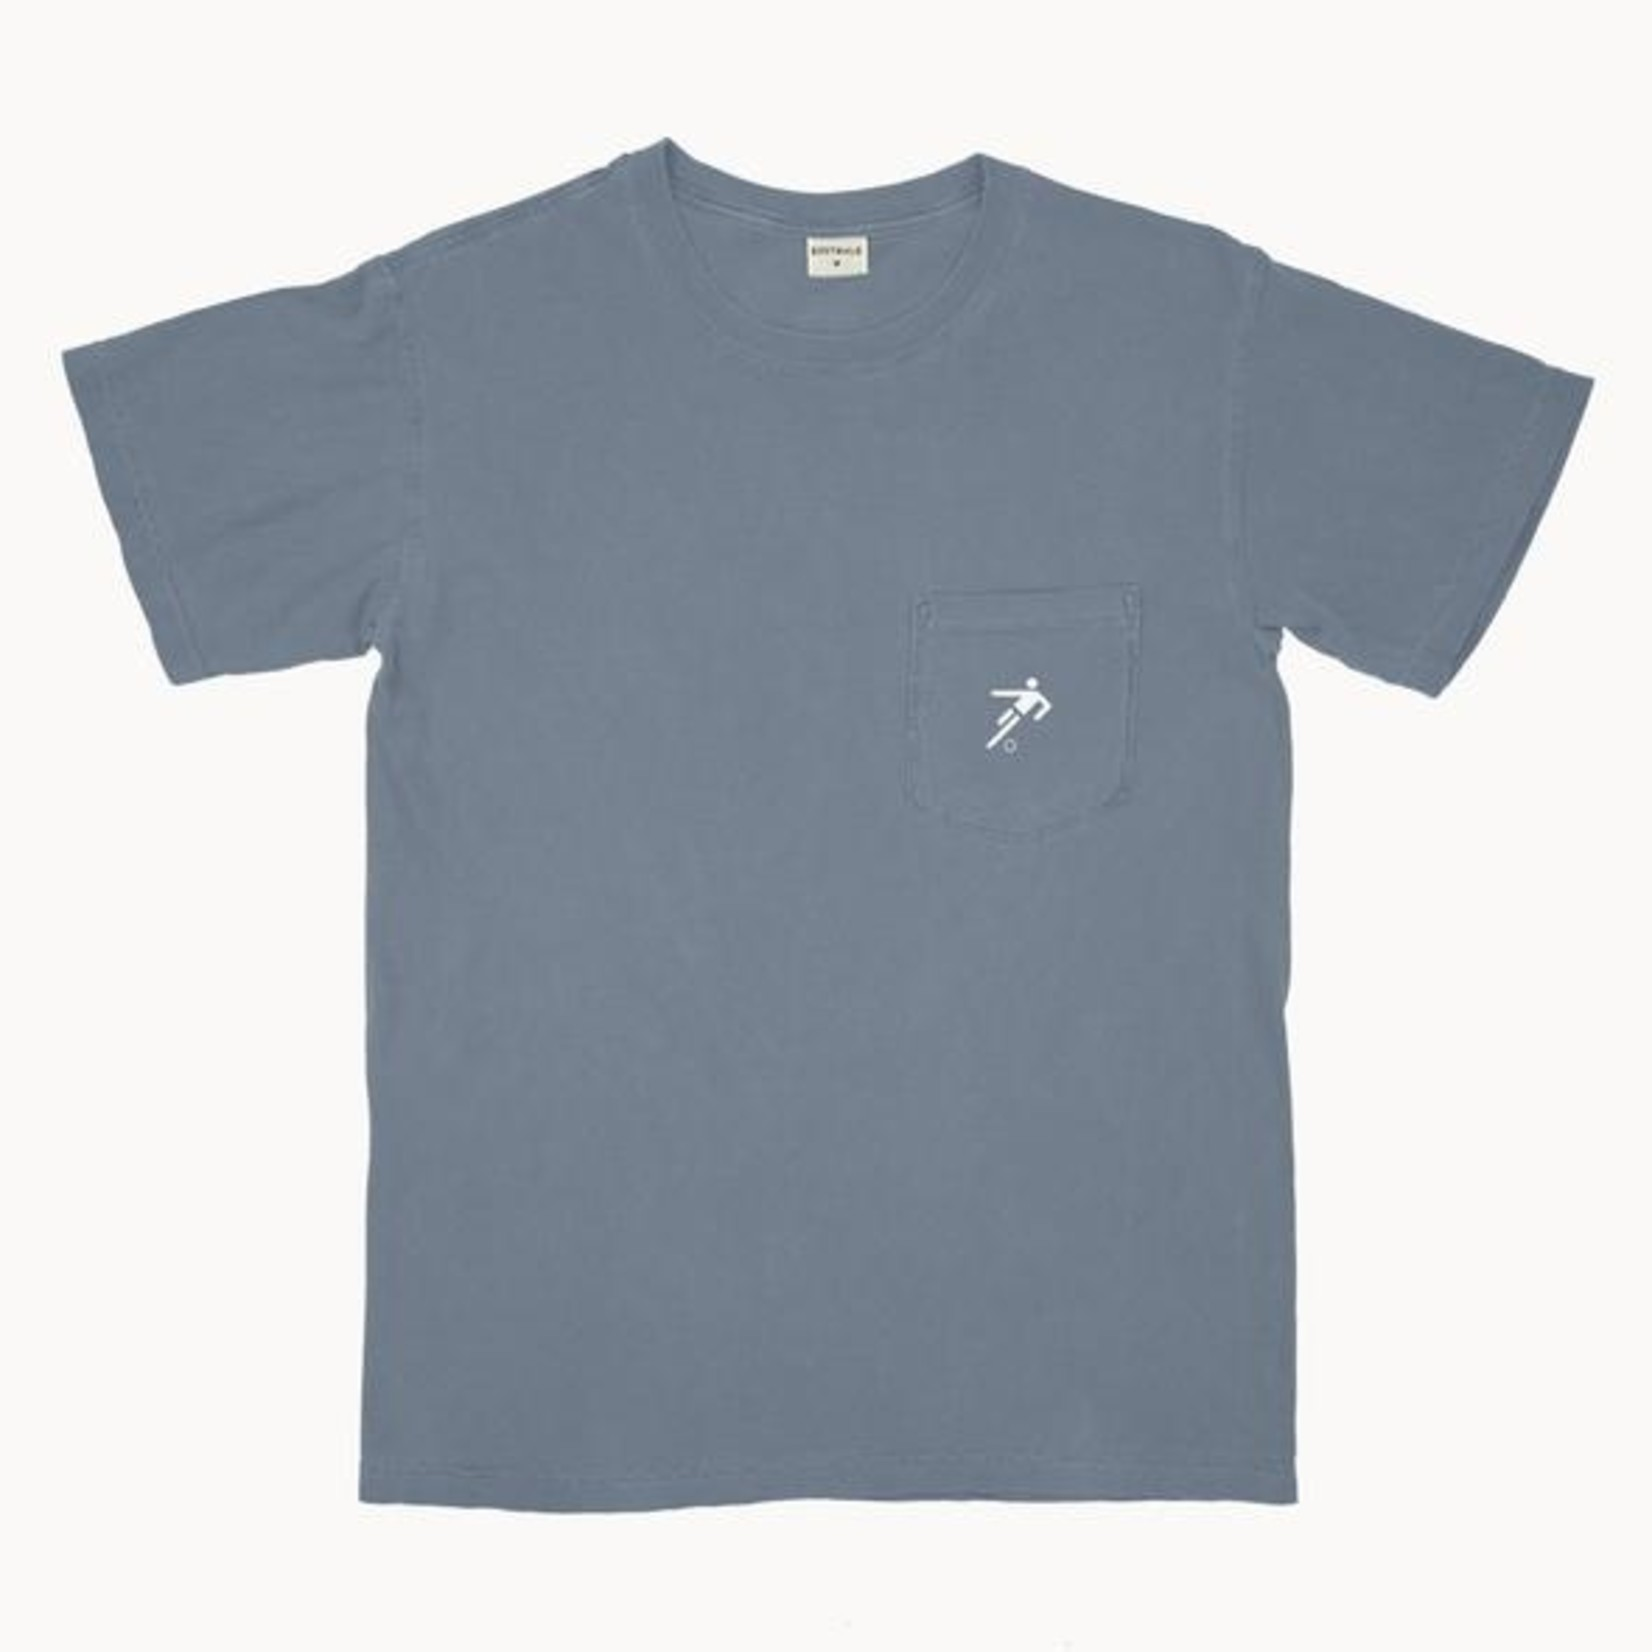 Erstwhile Icon Football - Breezy blue